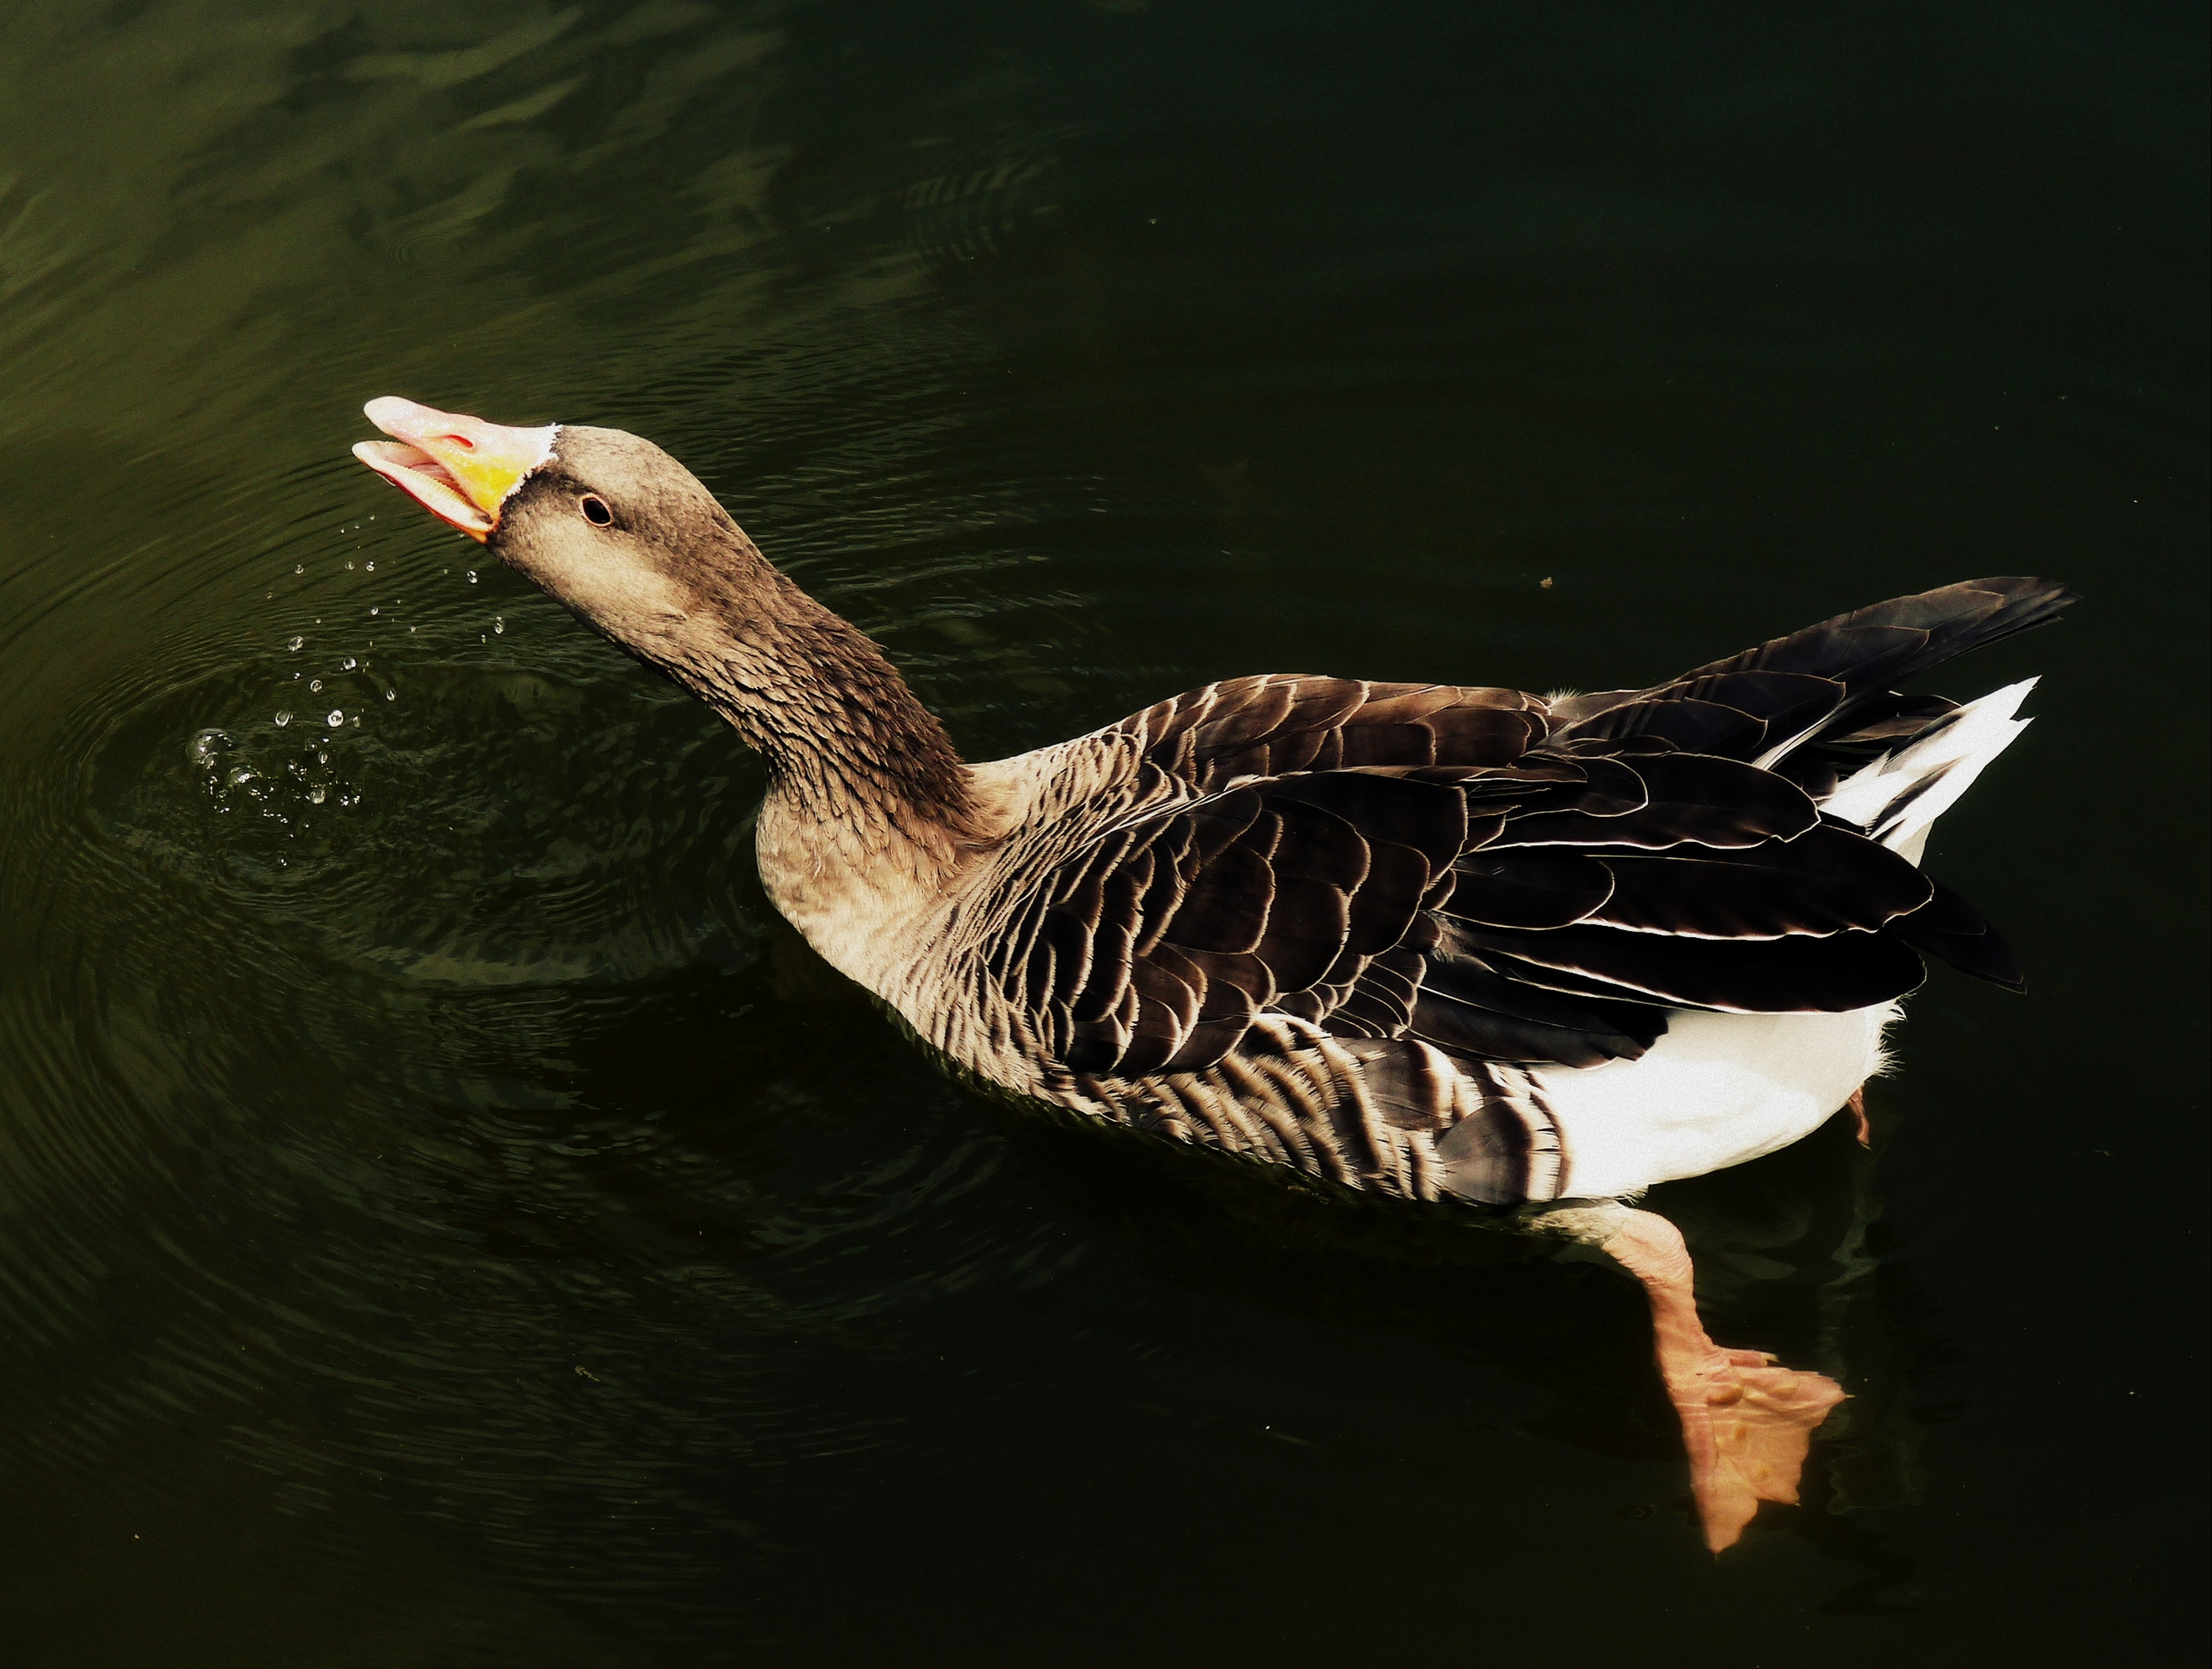 black duck swimming on body of water